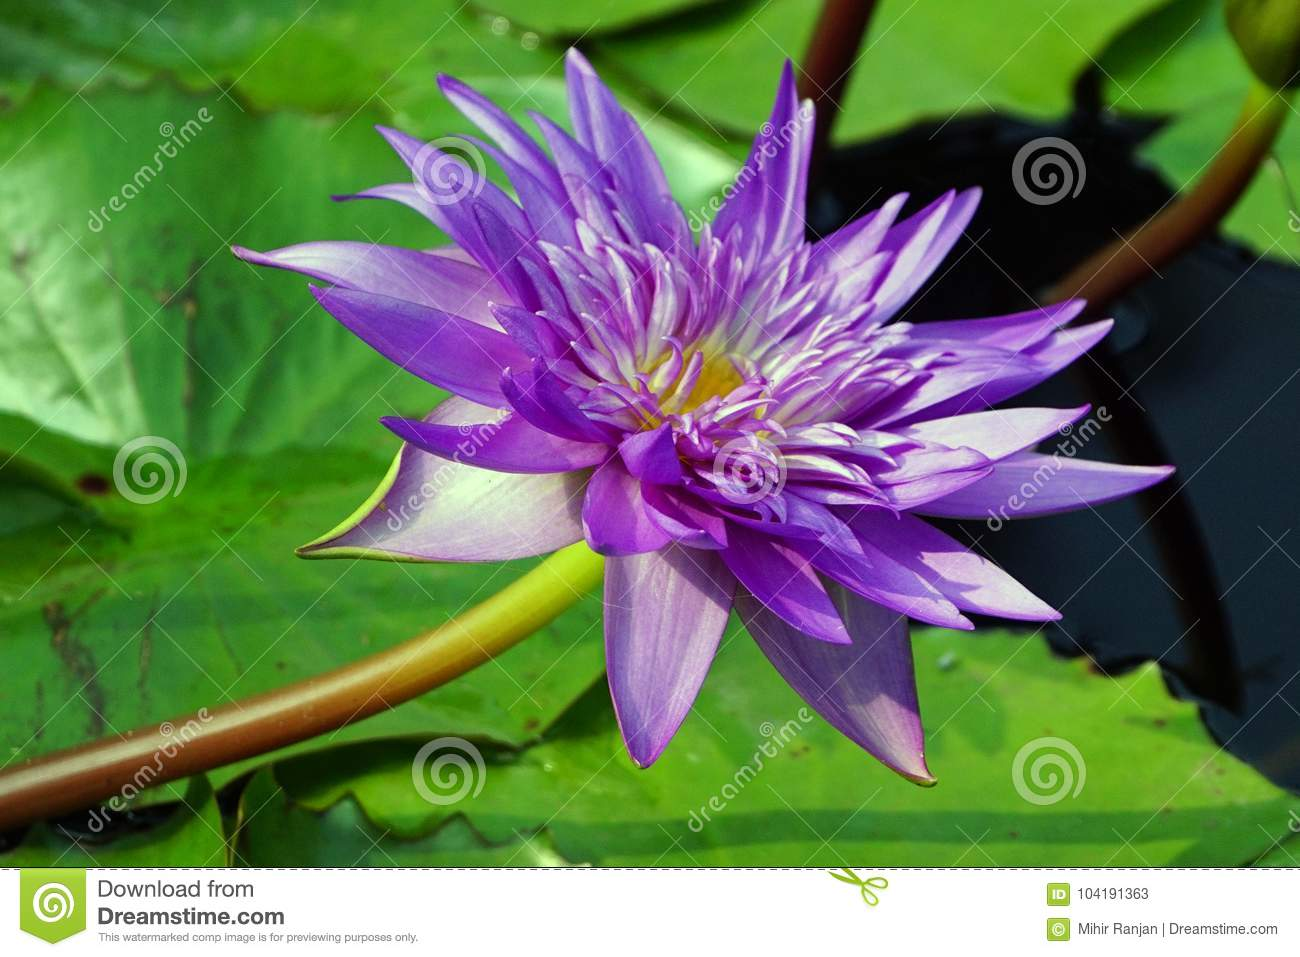 A purple color water lily flower.